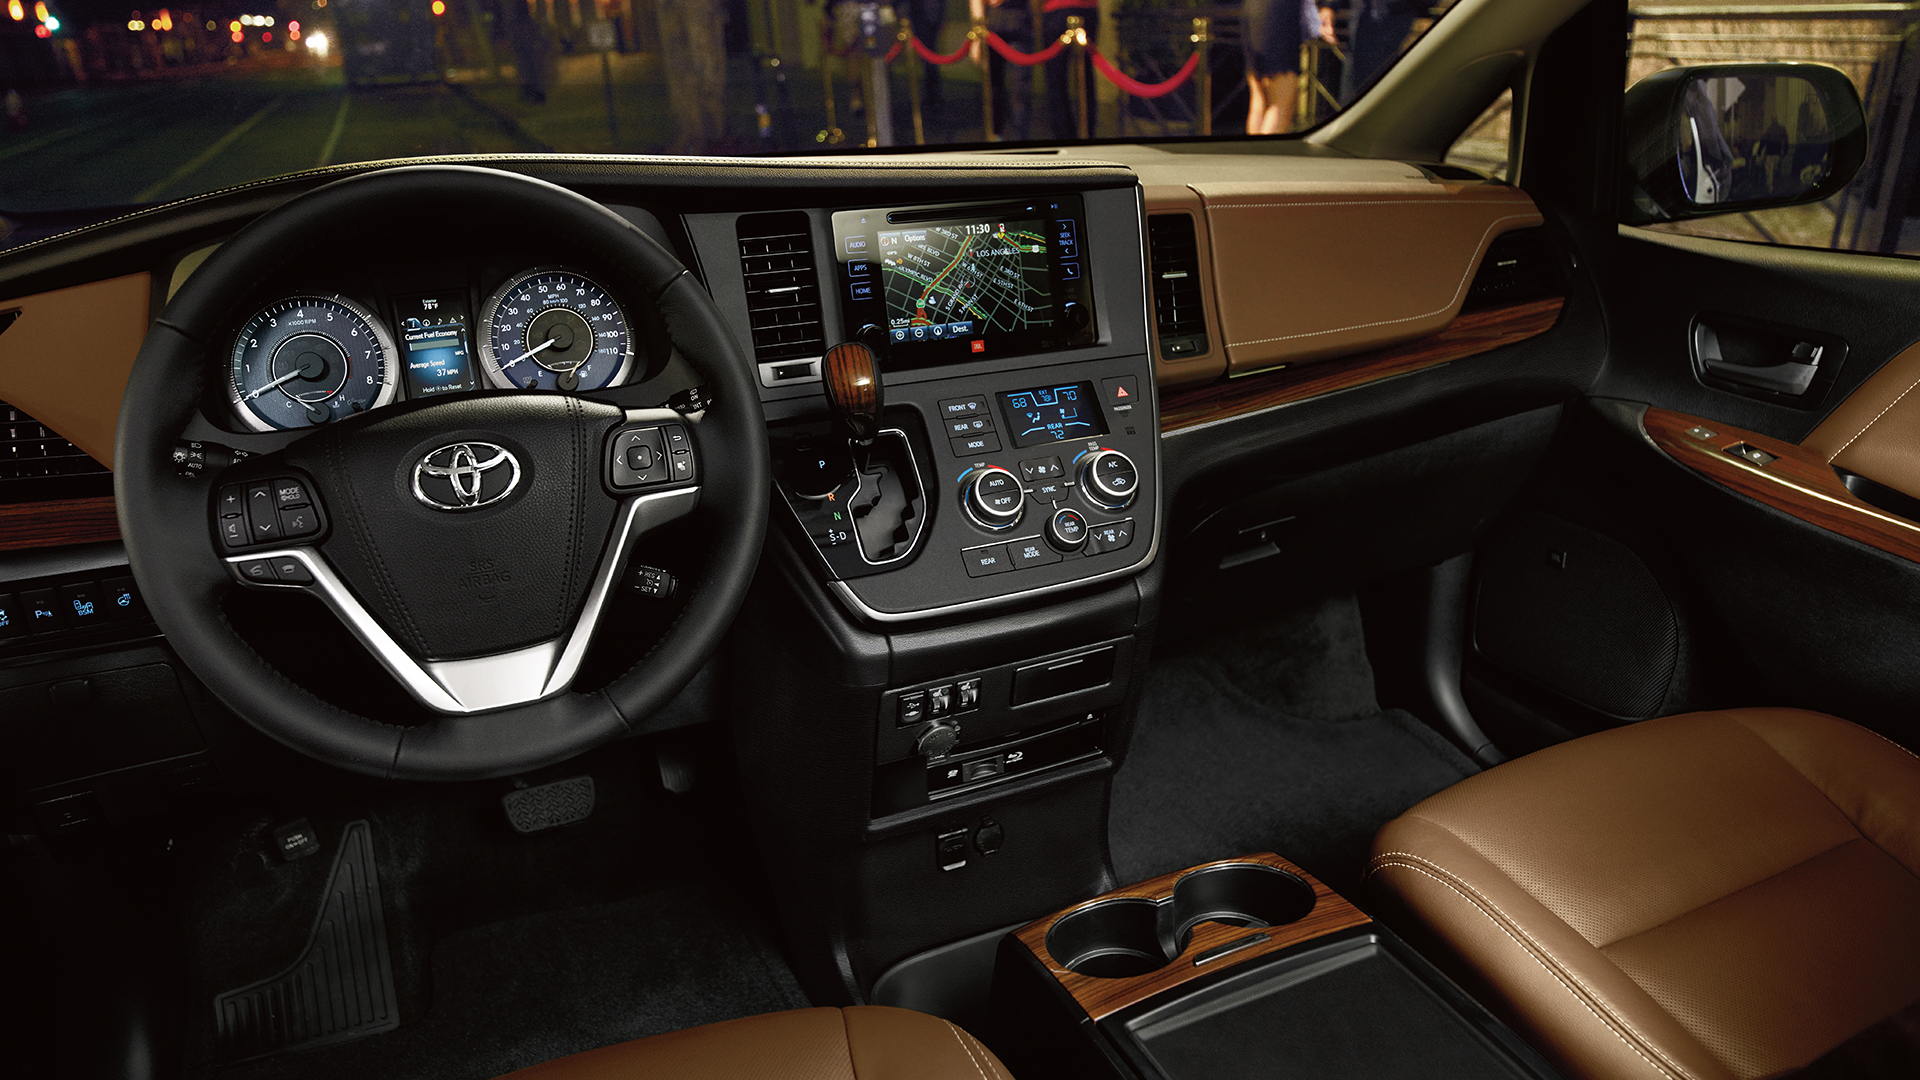 Interior of the Sienna